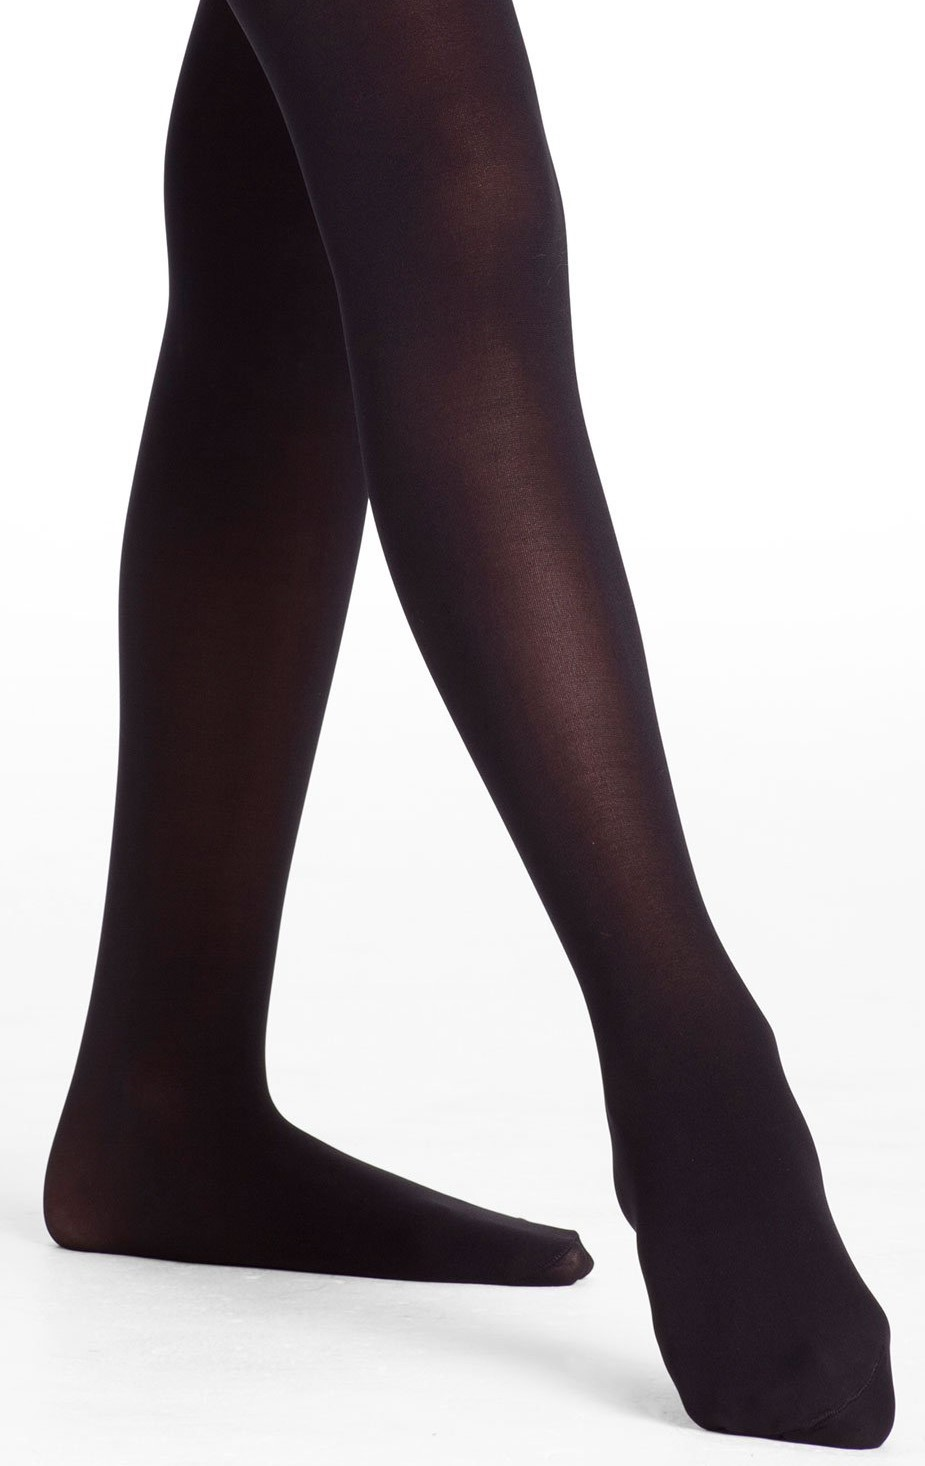 Danskin Child Microfiber Footed Tights